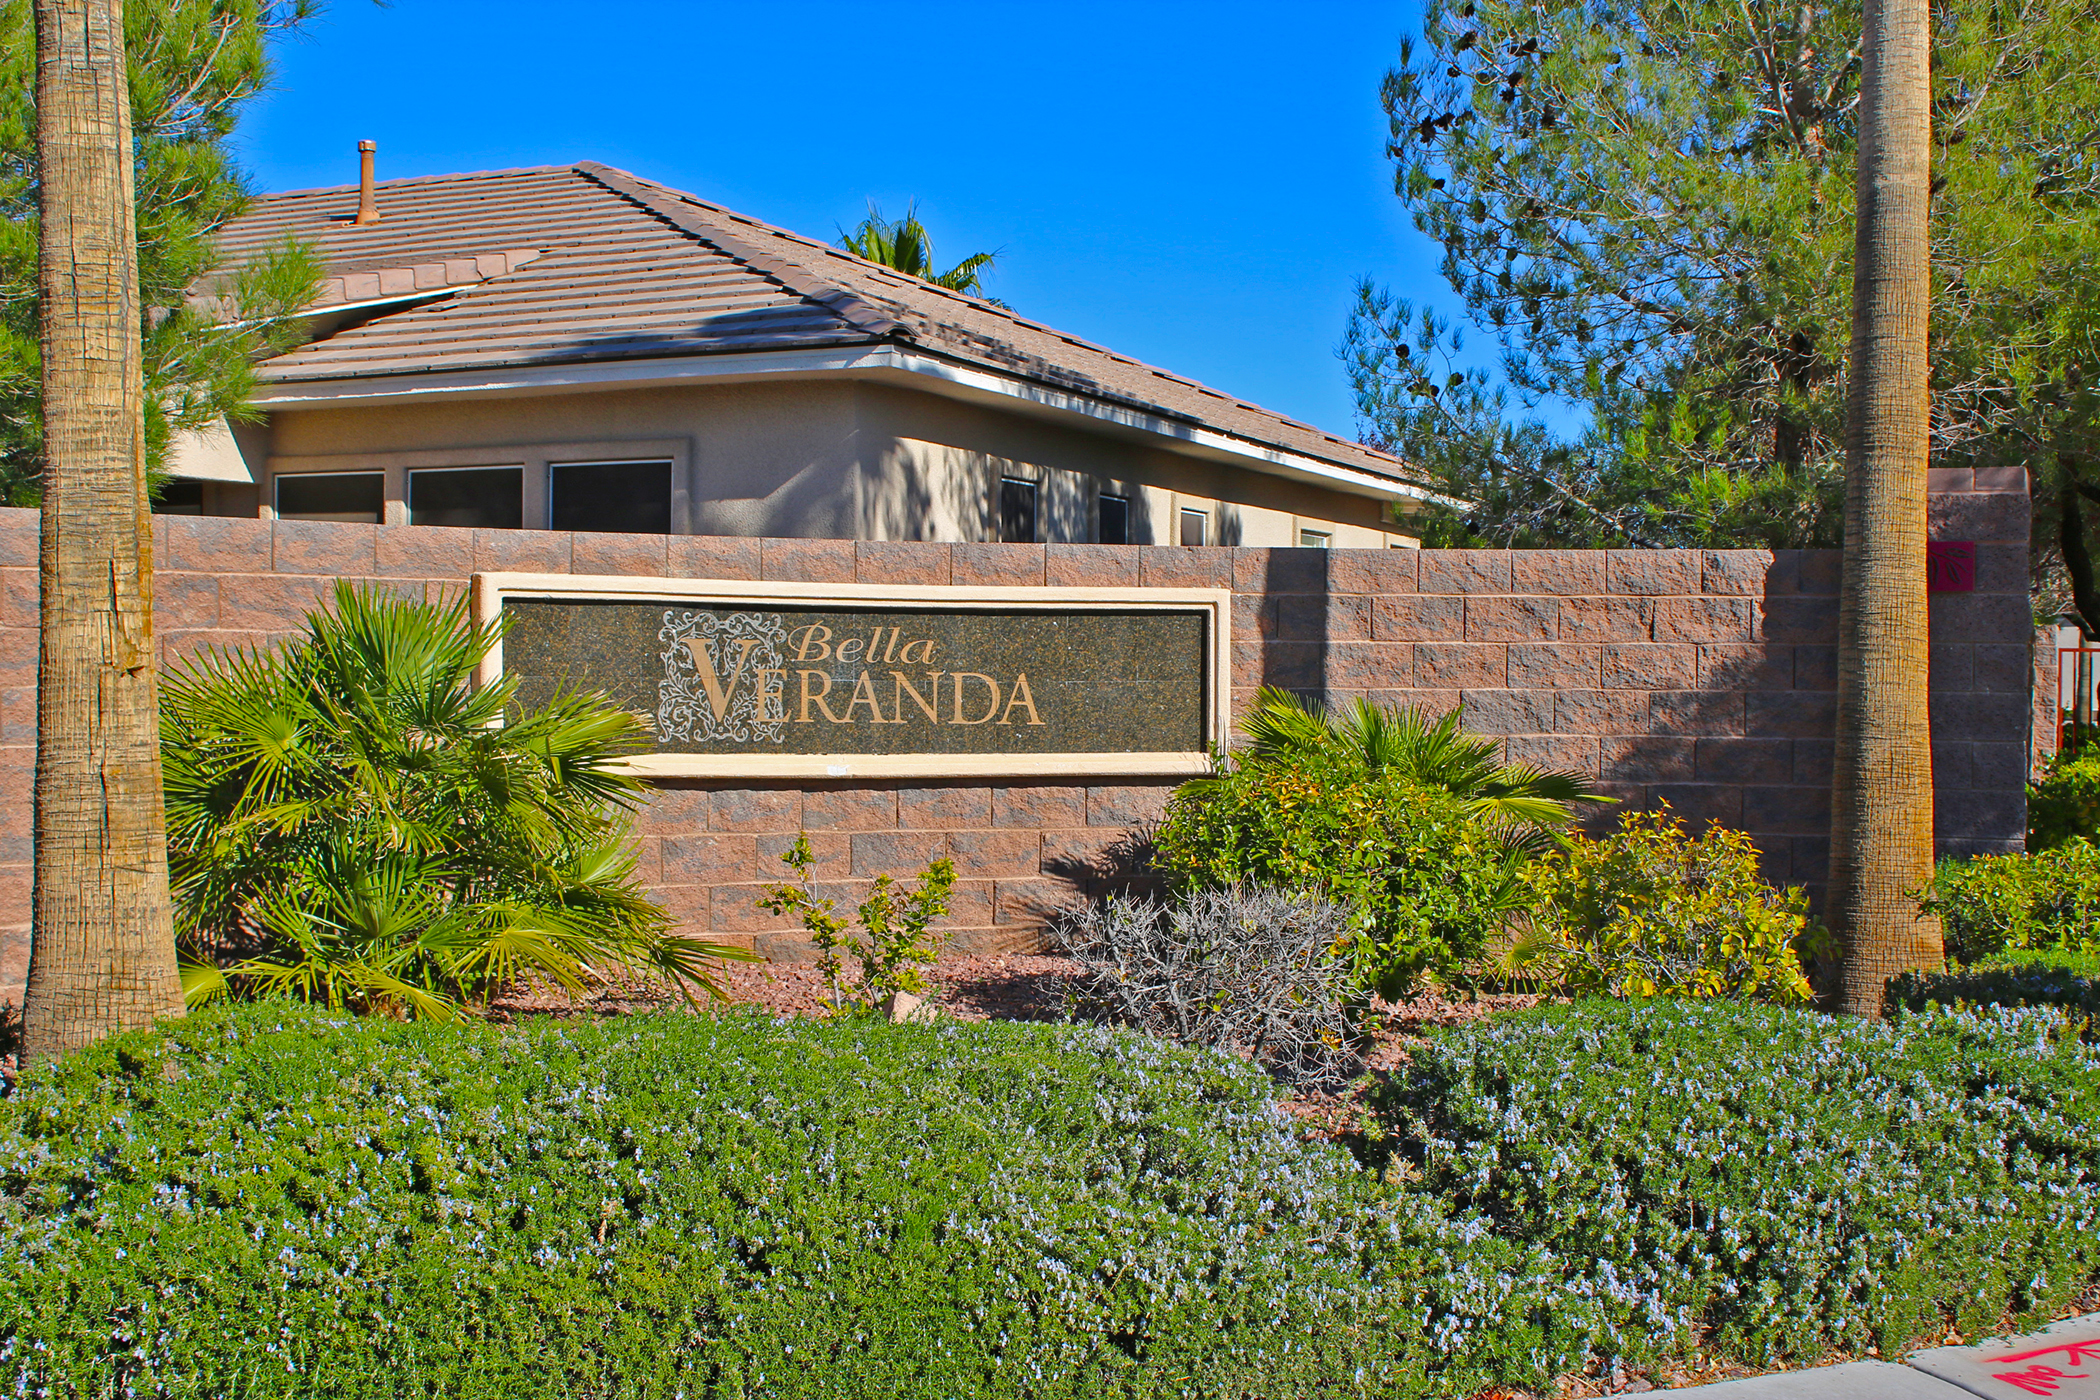 Bella Veranda Homes for sale Summerlin Willows - http ...